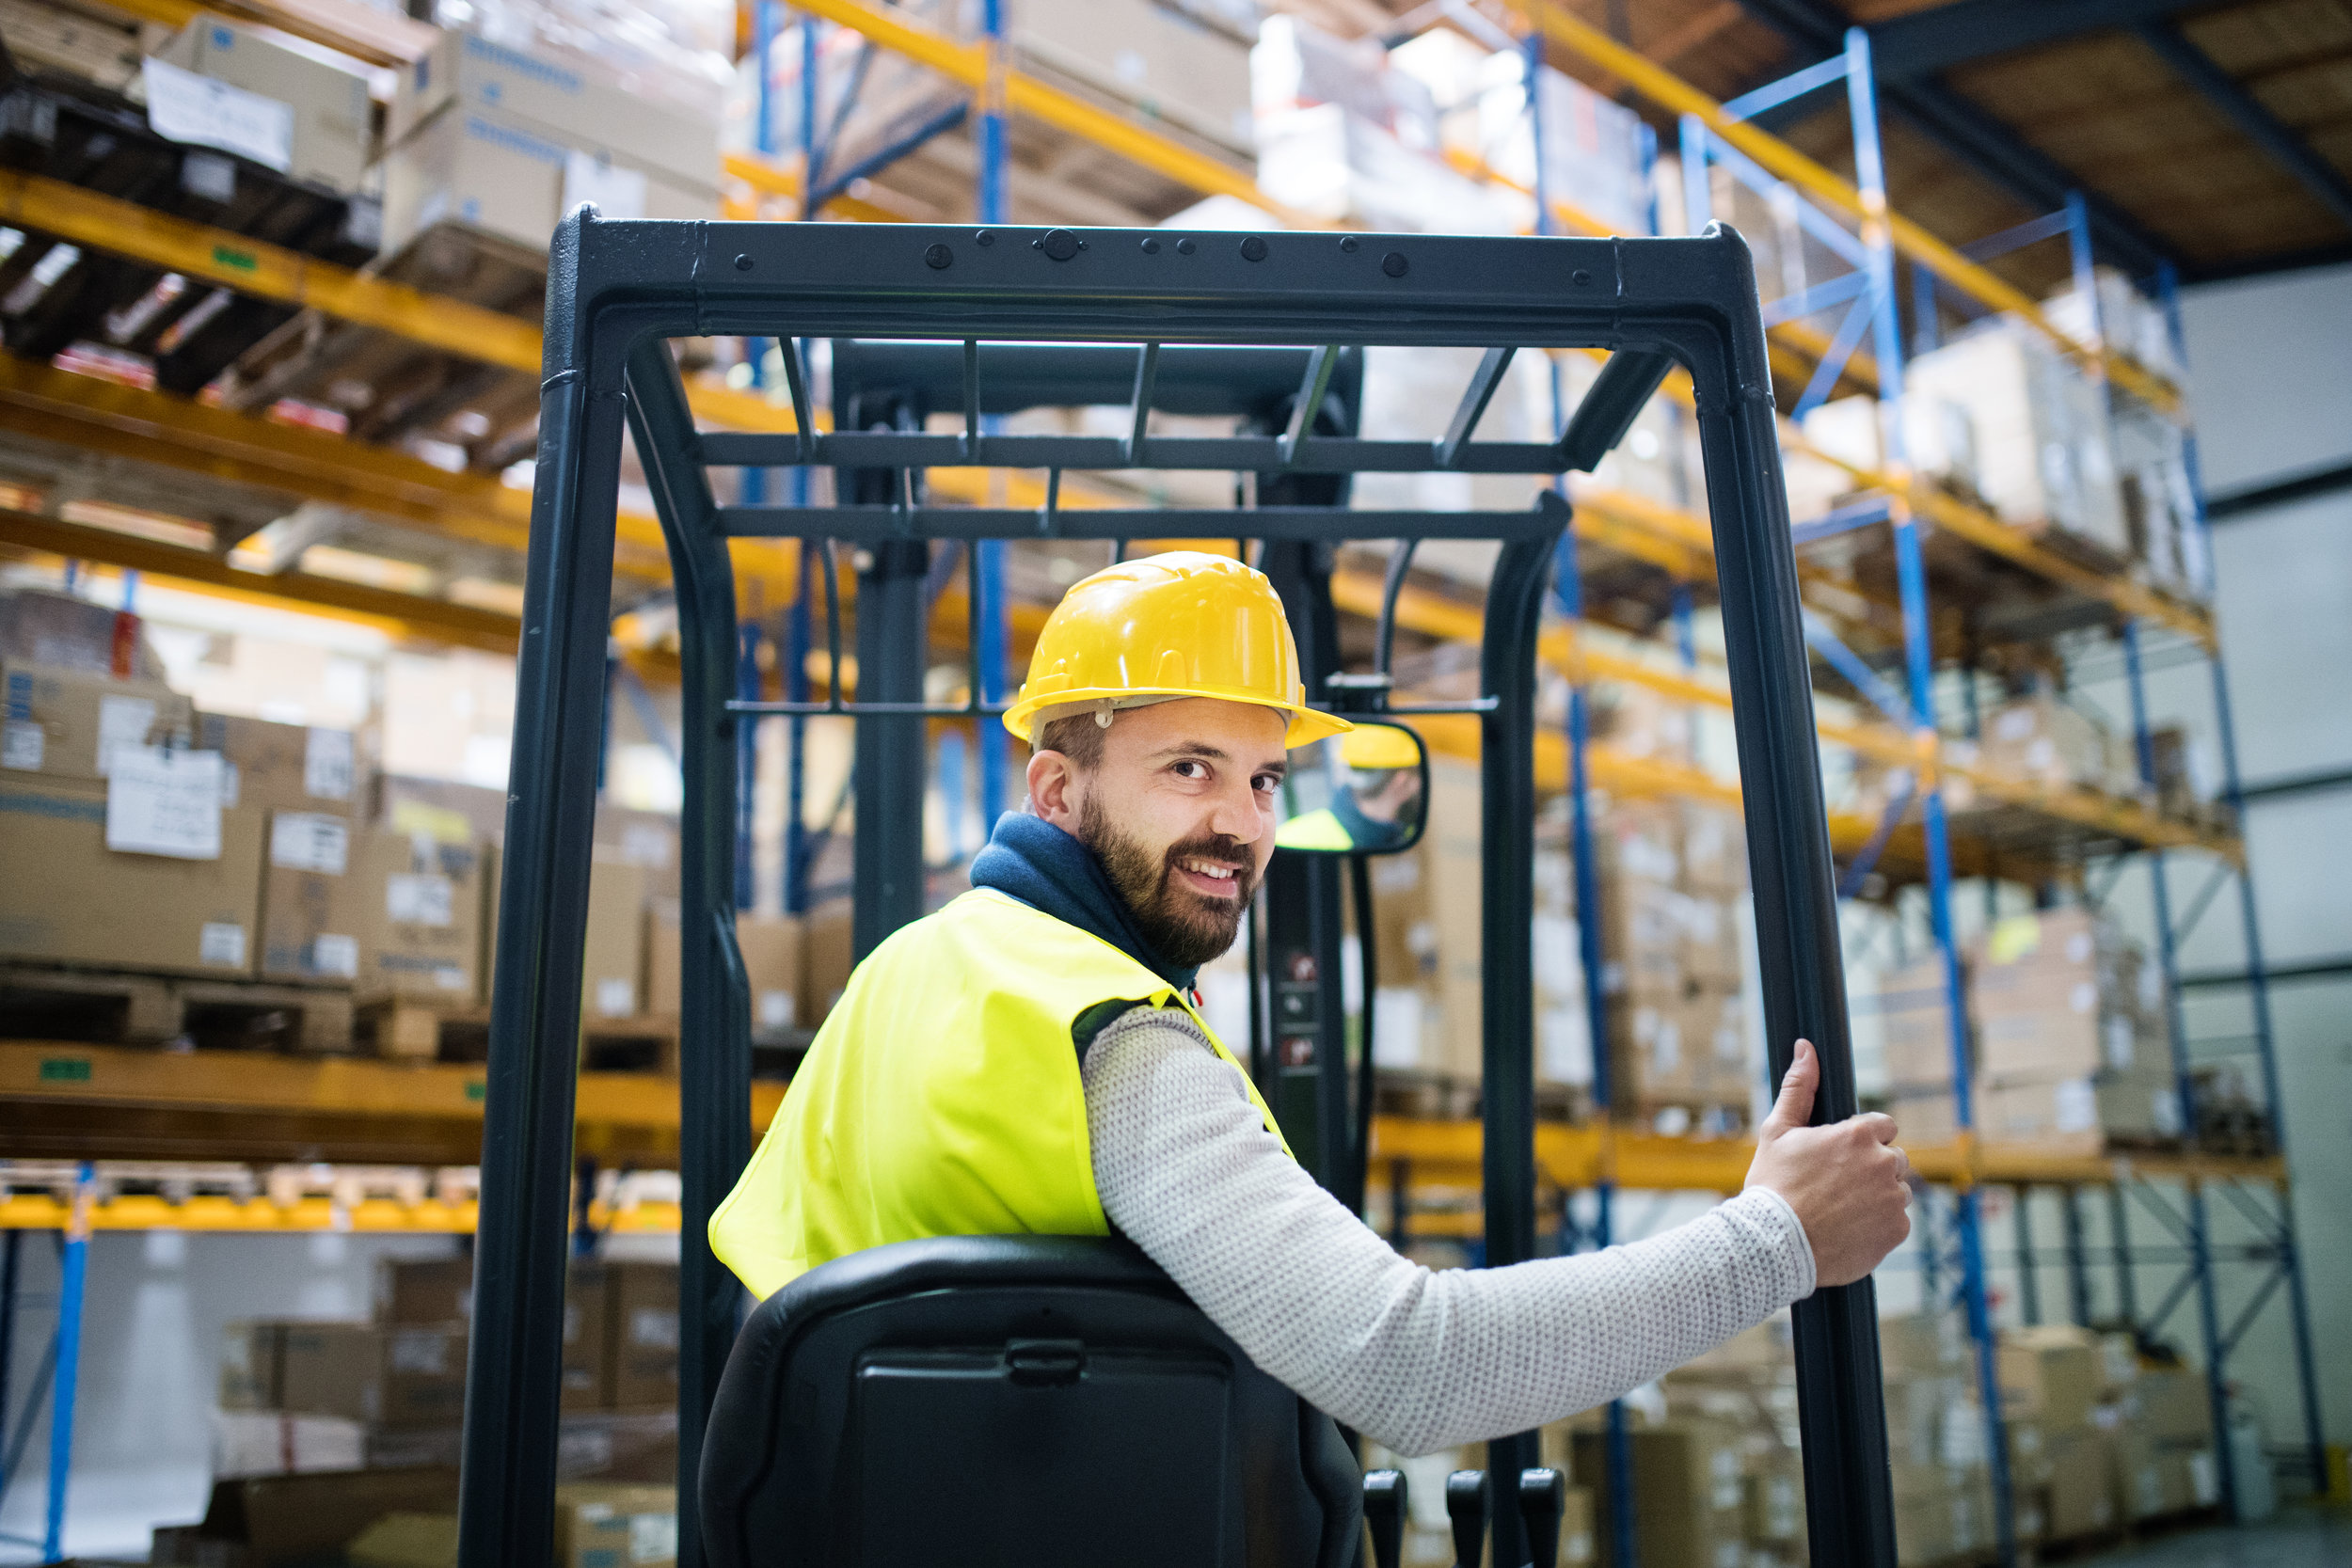 Our Jobs - We specialize in supplying companies for warehouse, manufacturing, production, assembly and other labor positions. Most of our clients are looking for temp-to-hire employees, so if you're looking for a serious job you're in the right place!